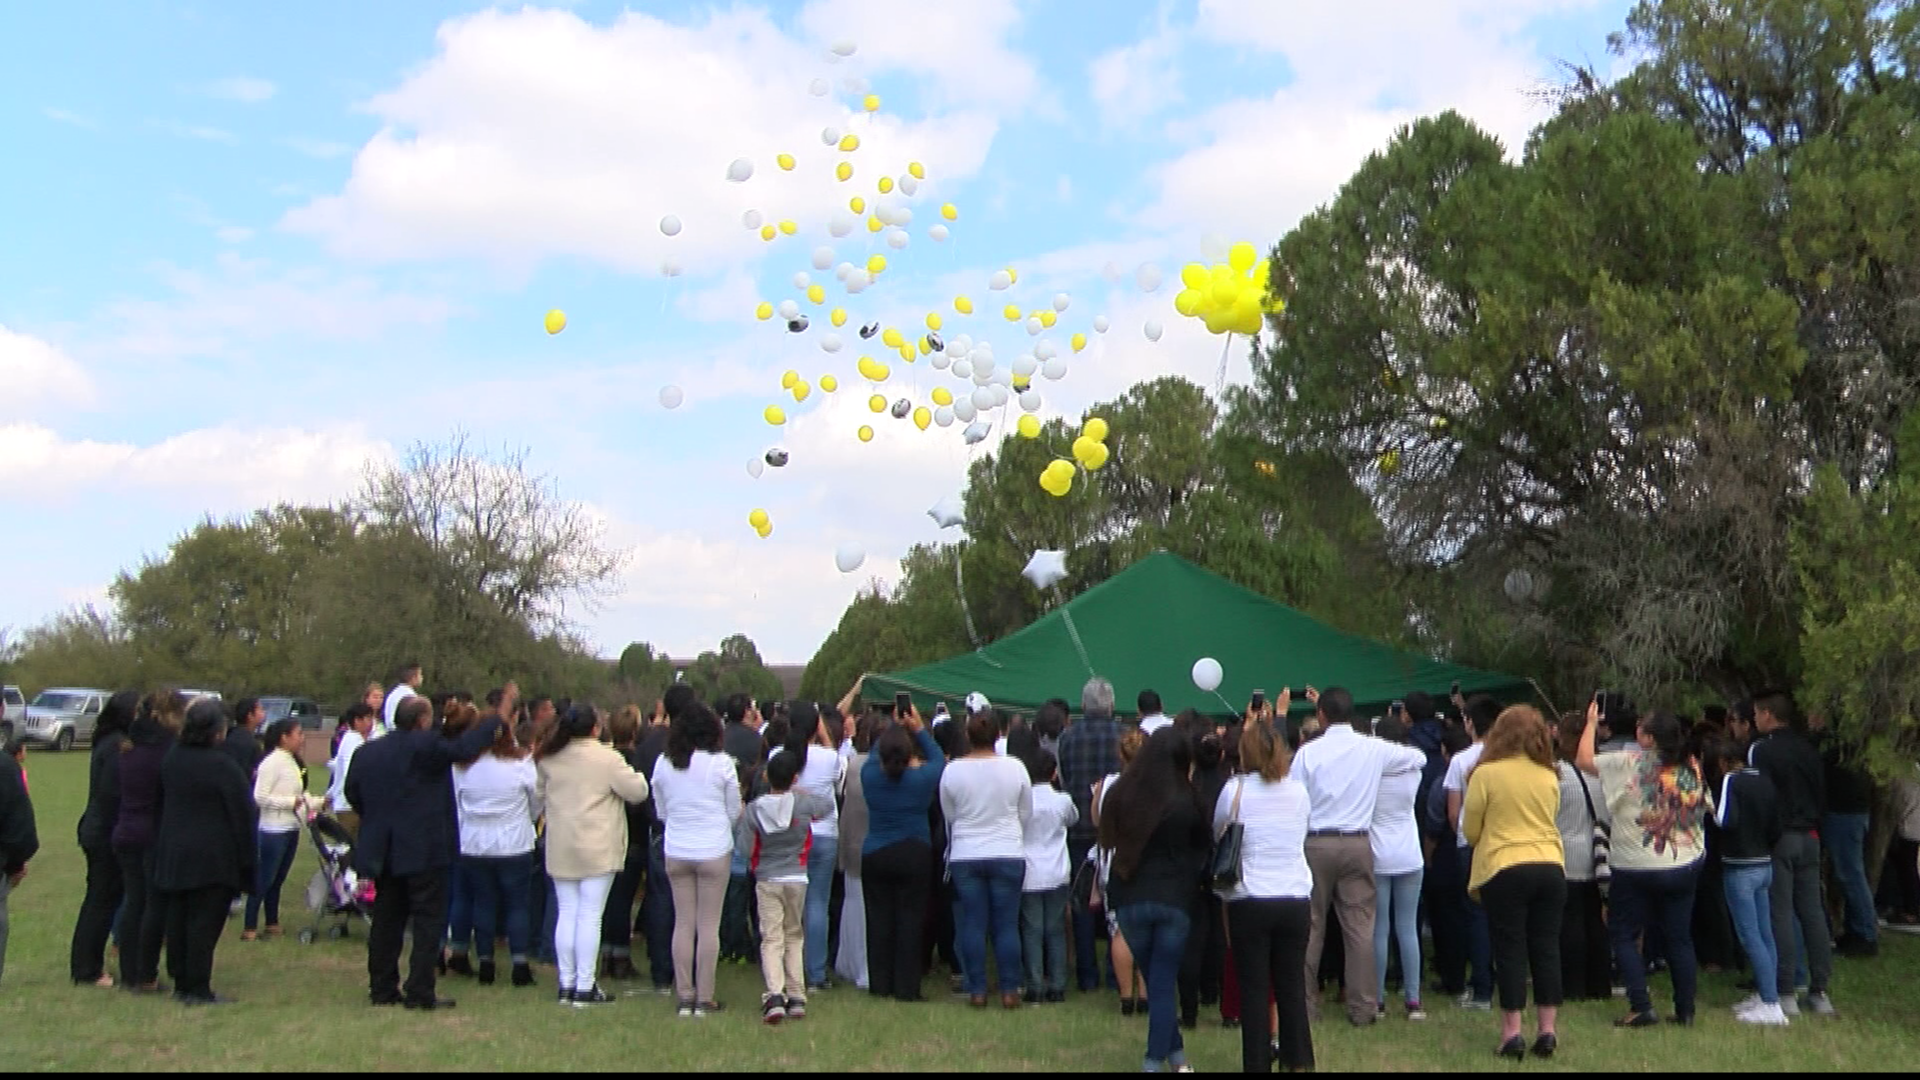 The family of a 14-year-old boy killed in an auto-pedestrian crash on Slaughter Lane is calling for justice and asking police to file charges against the driver involved. (CBS Austin)